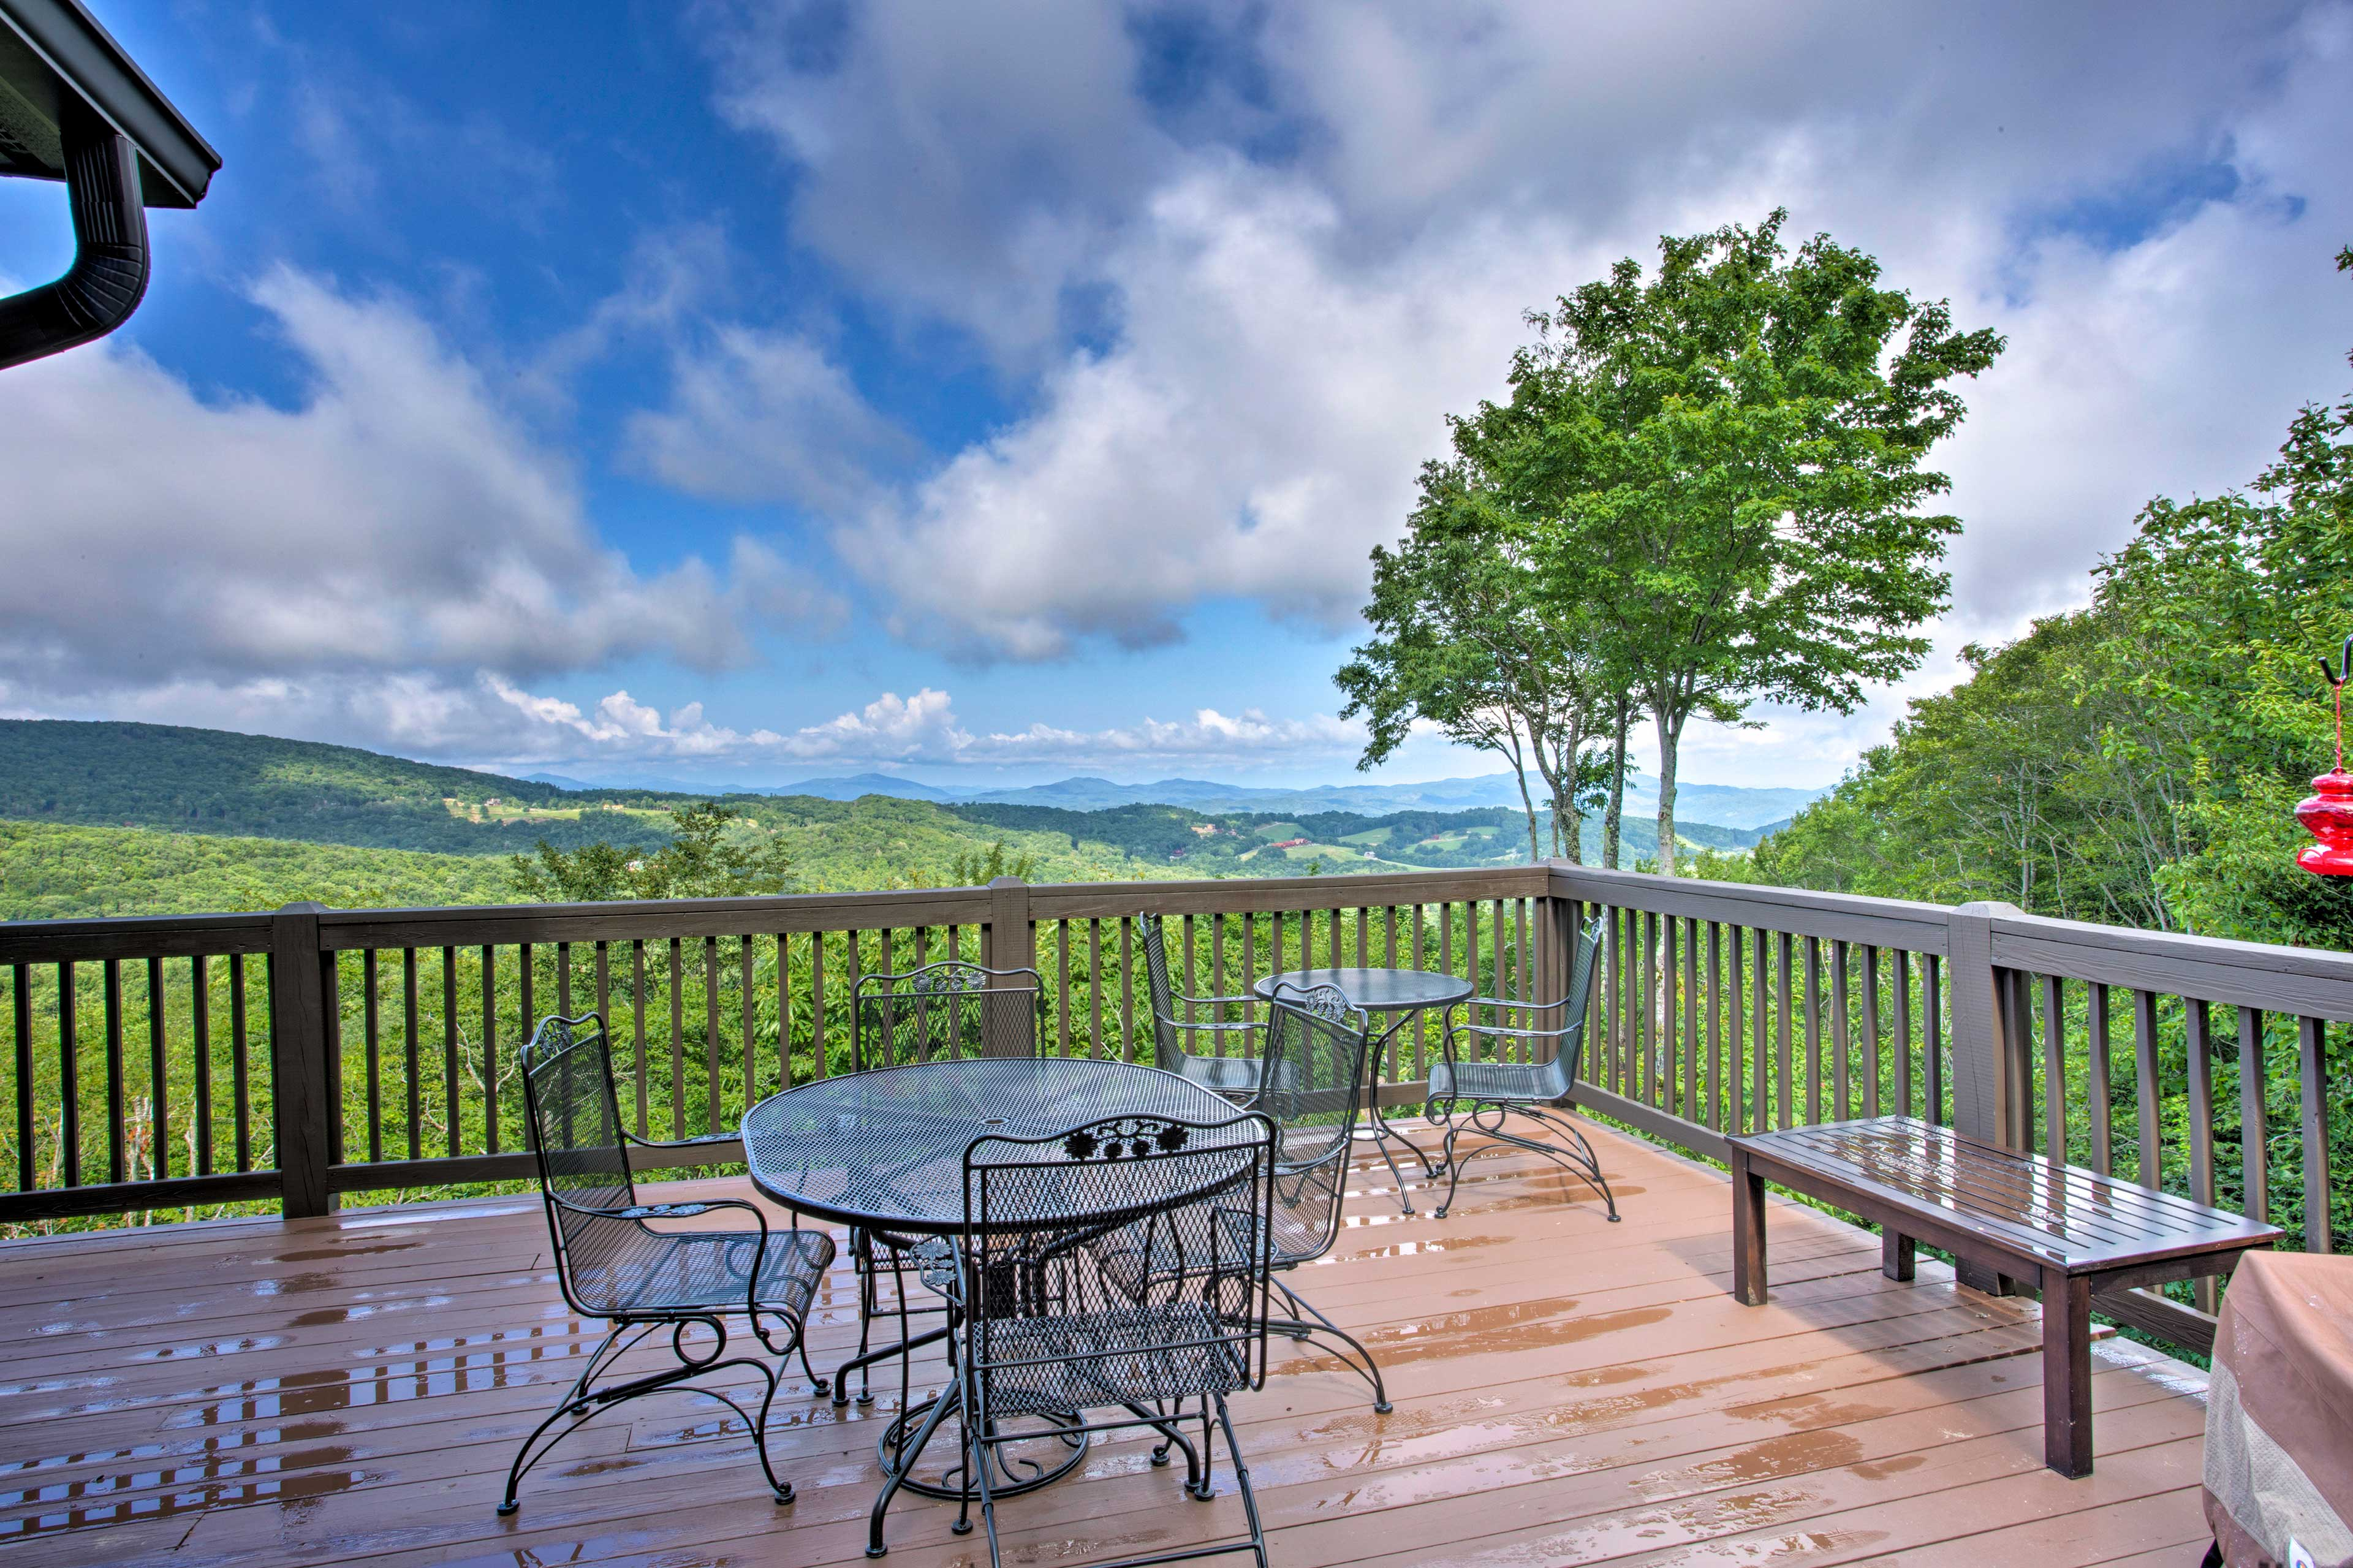 This Beech Mountain vacation rental home is the ultimate mountain getaway!